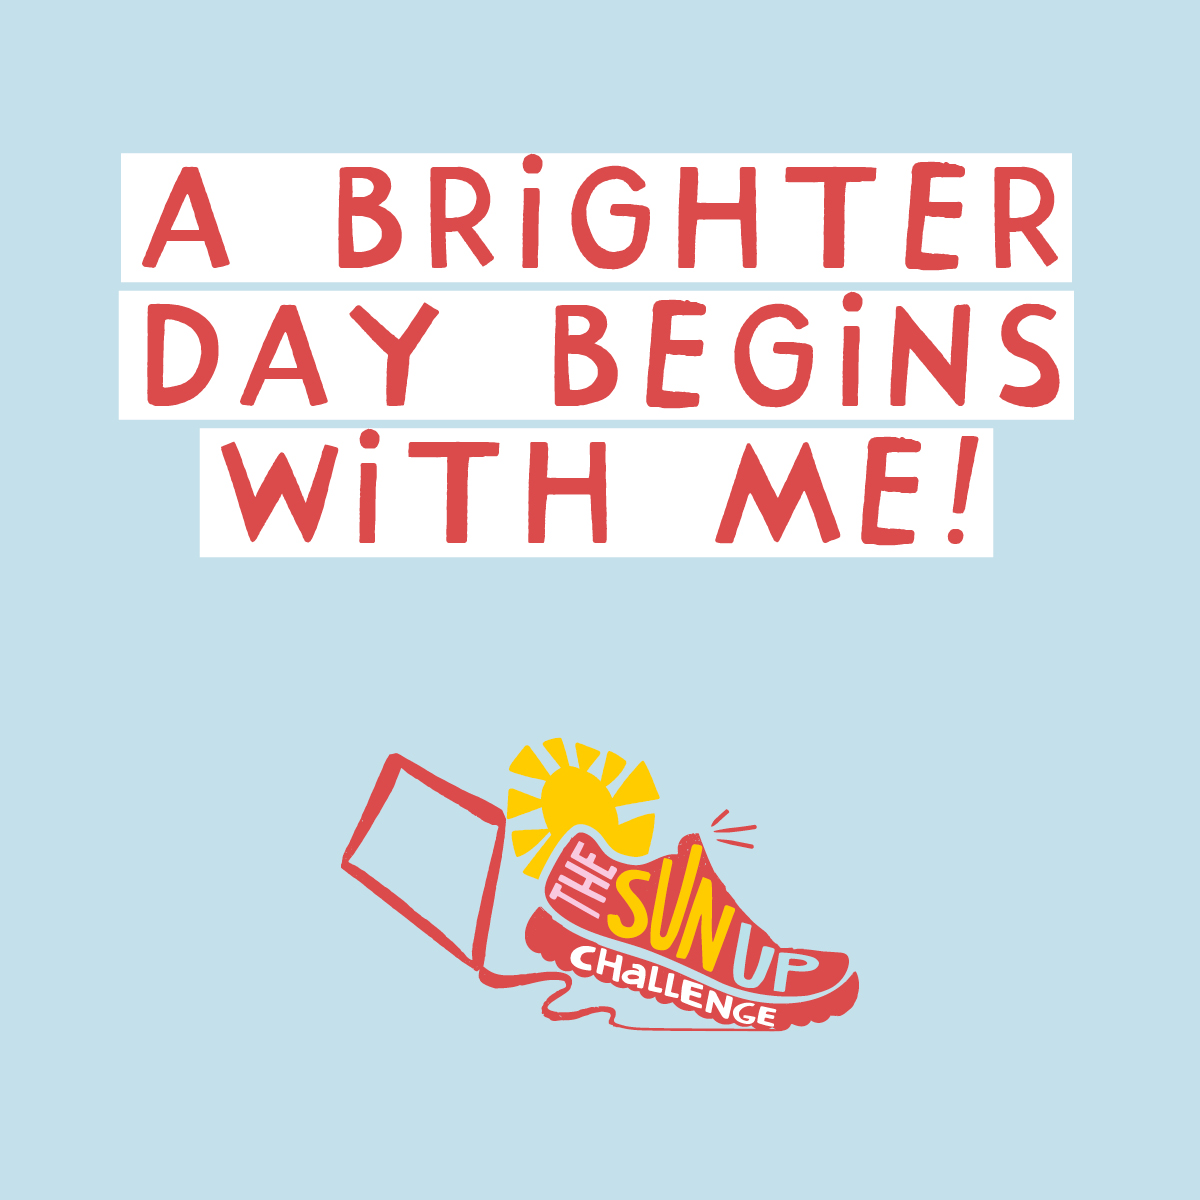 A Brighter Day Begins With Me